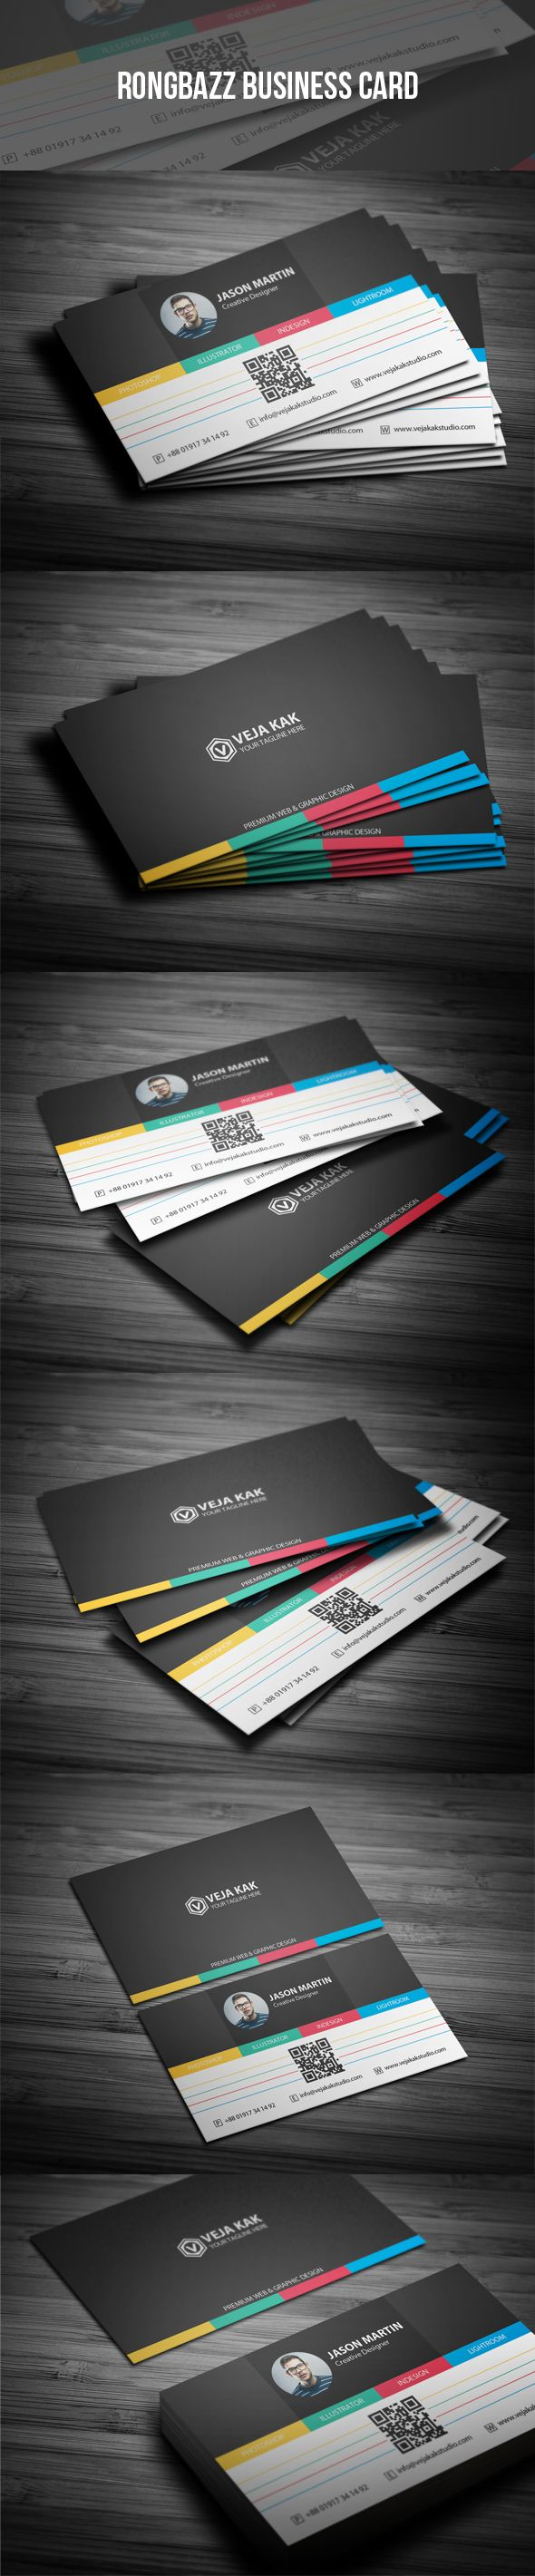 Click Business Cards Sydney Choice Image - Card Design And Card ...